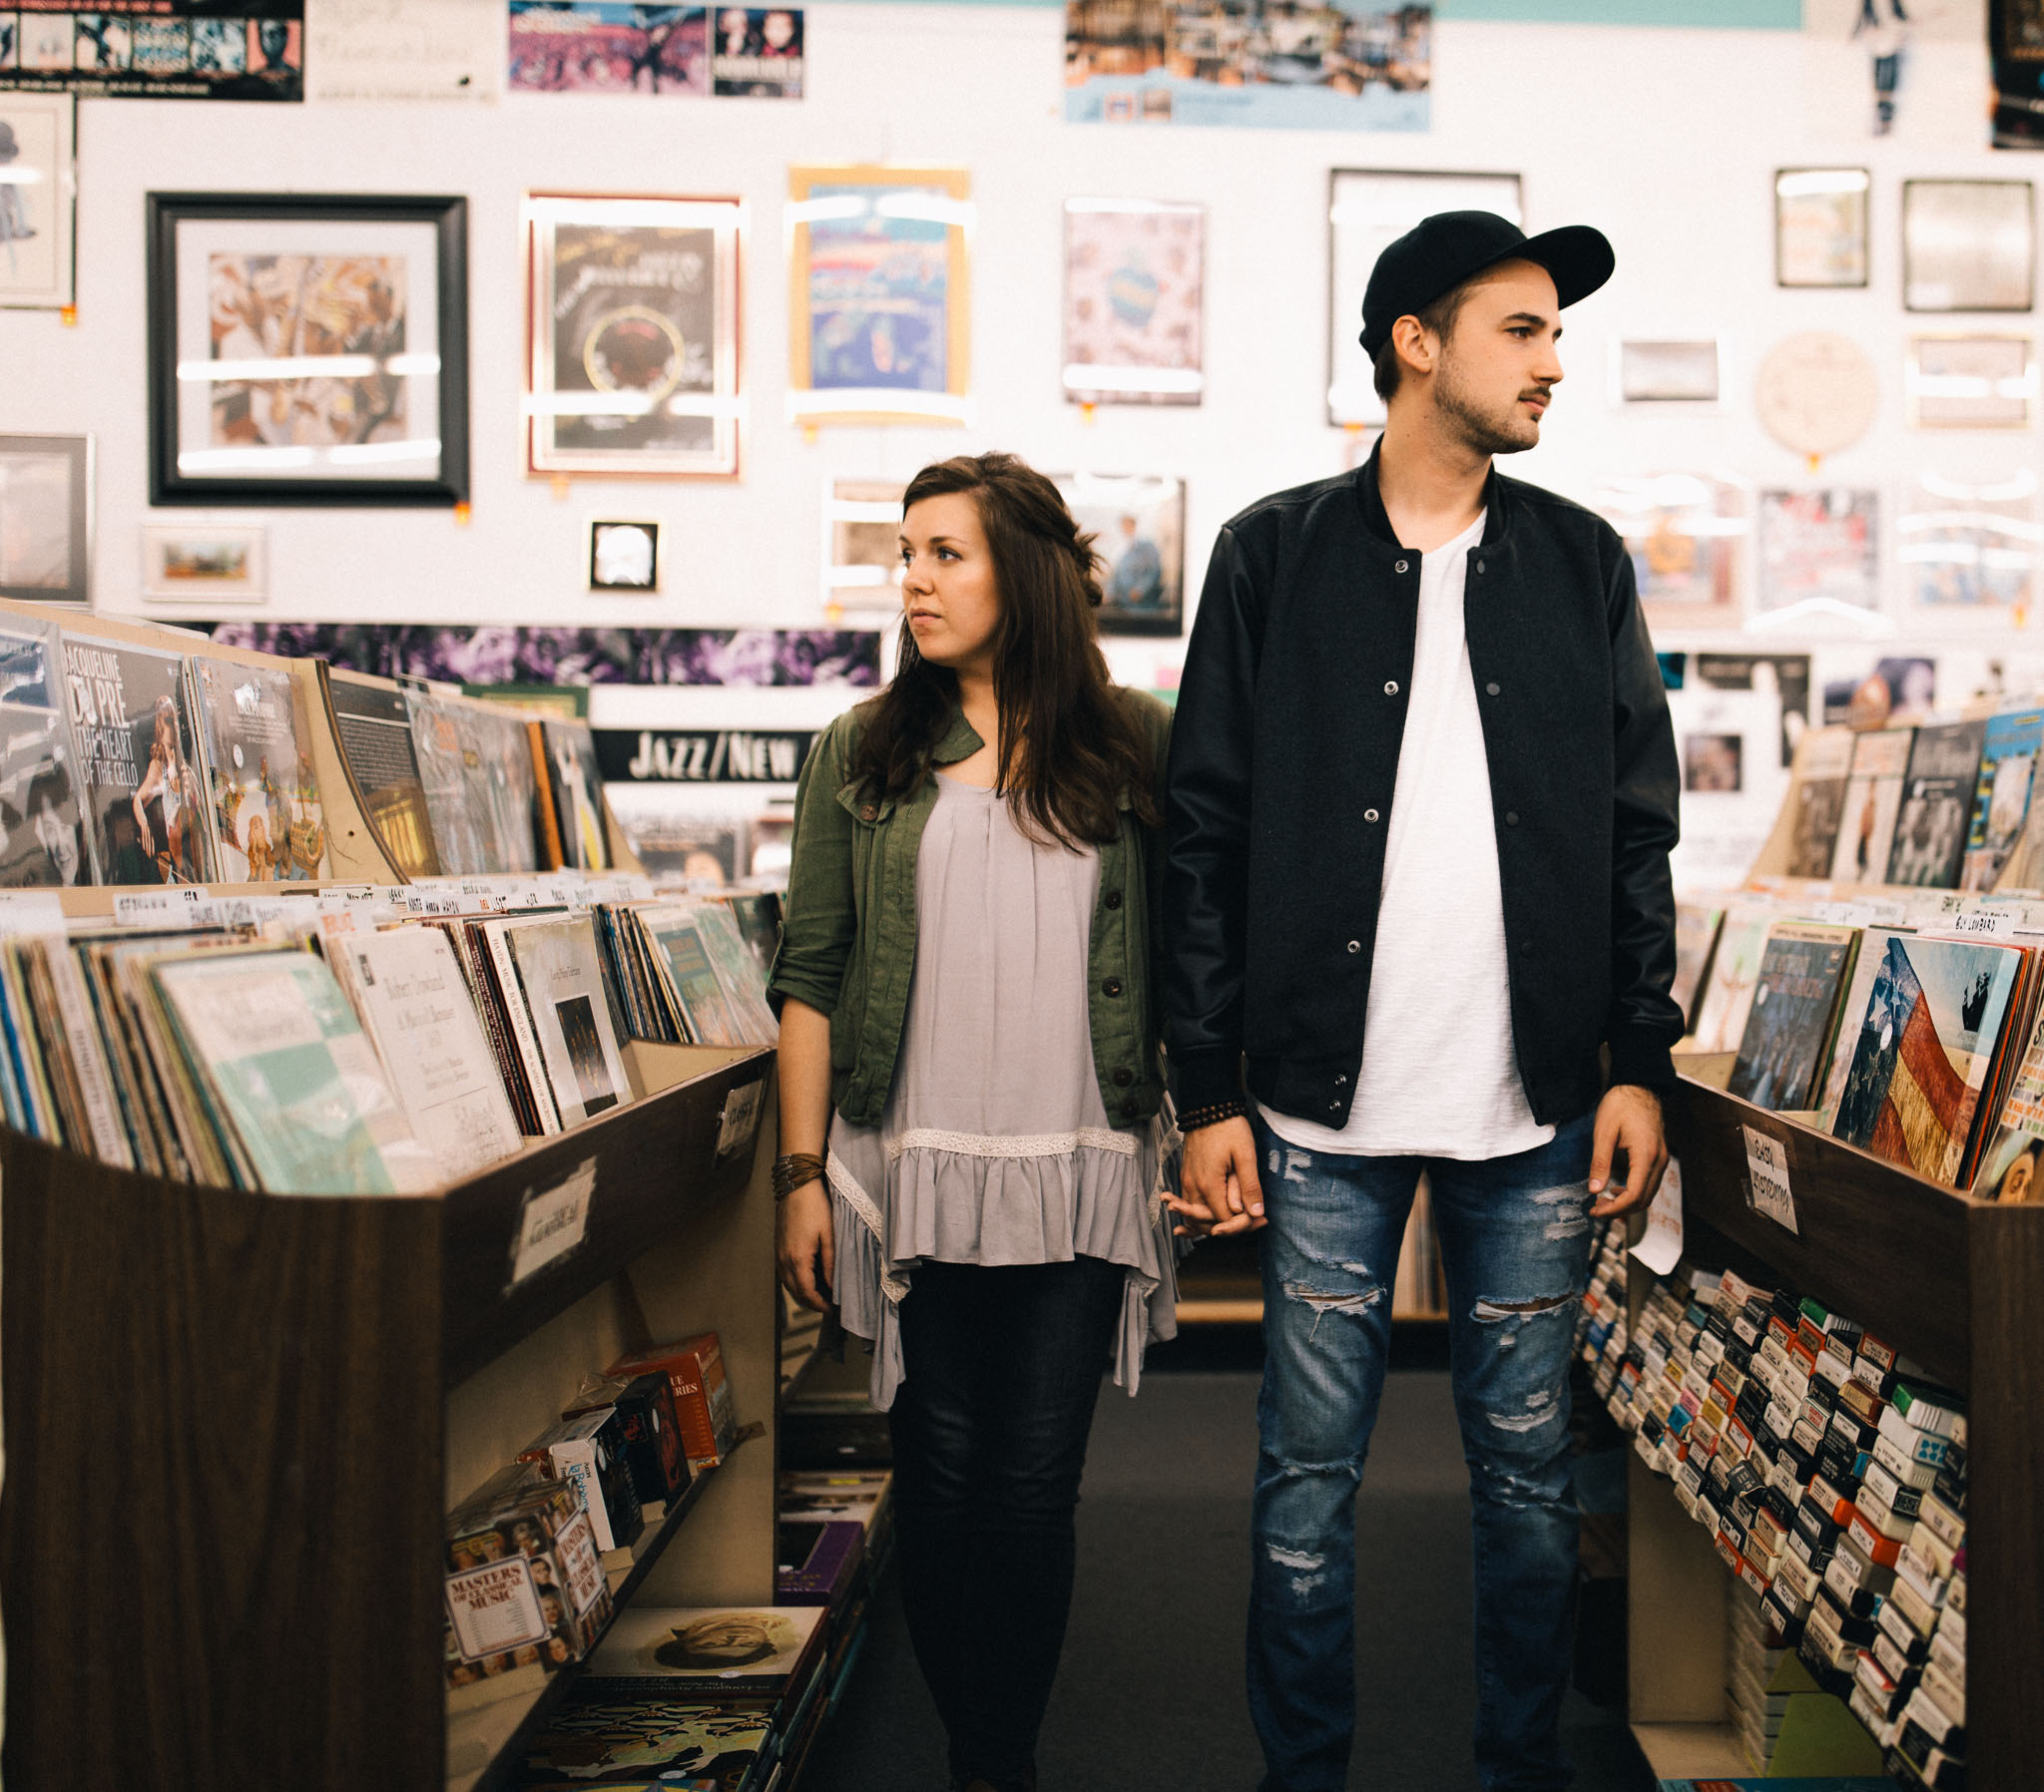 2018_02_02 Bryce and April Record Store Session Blog Edited Full Resolution 0020.jpg